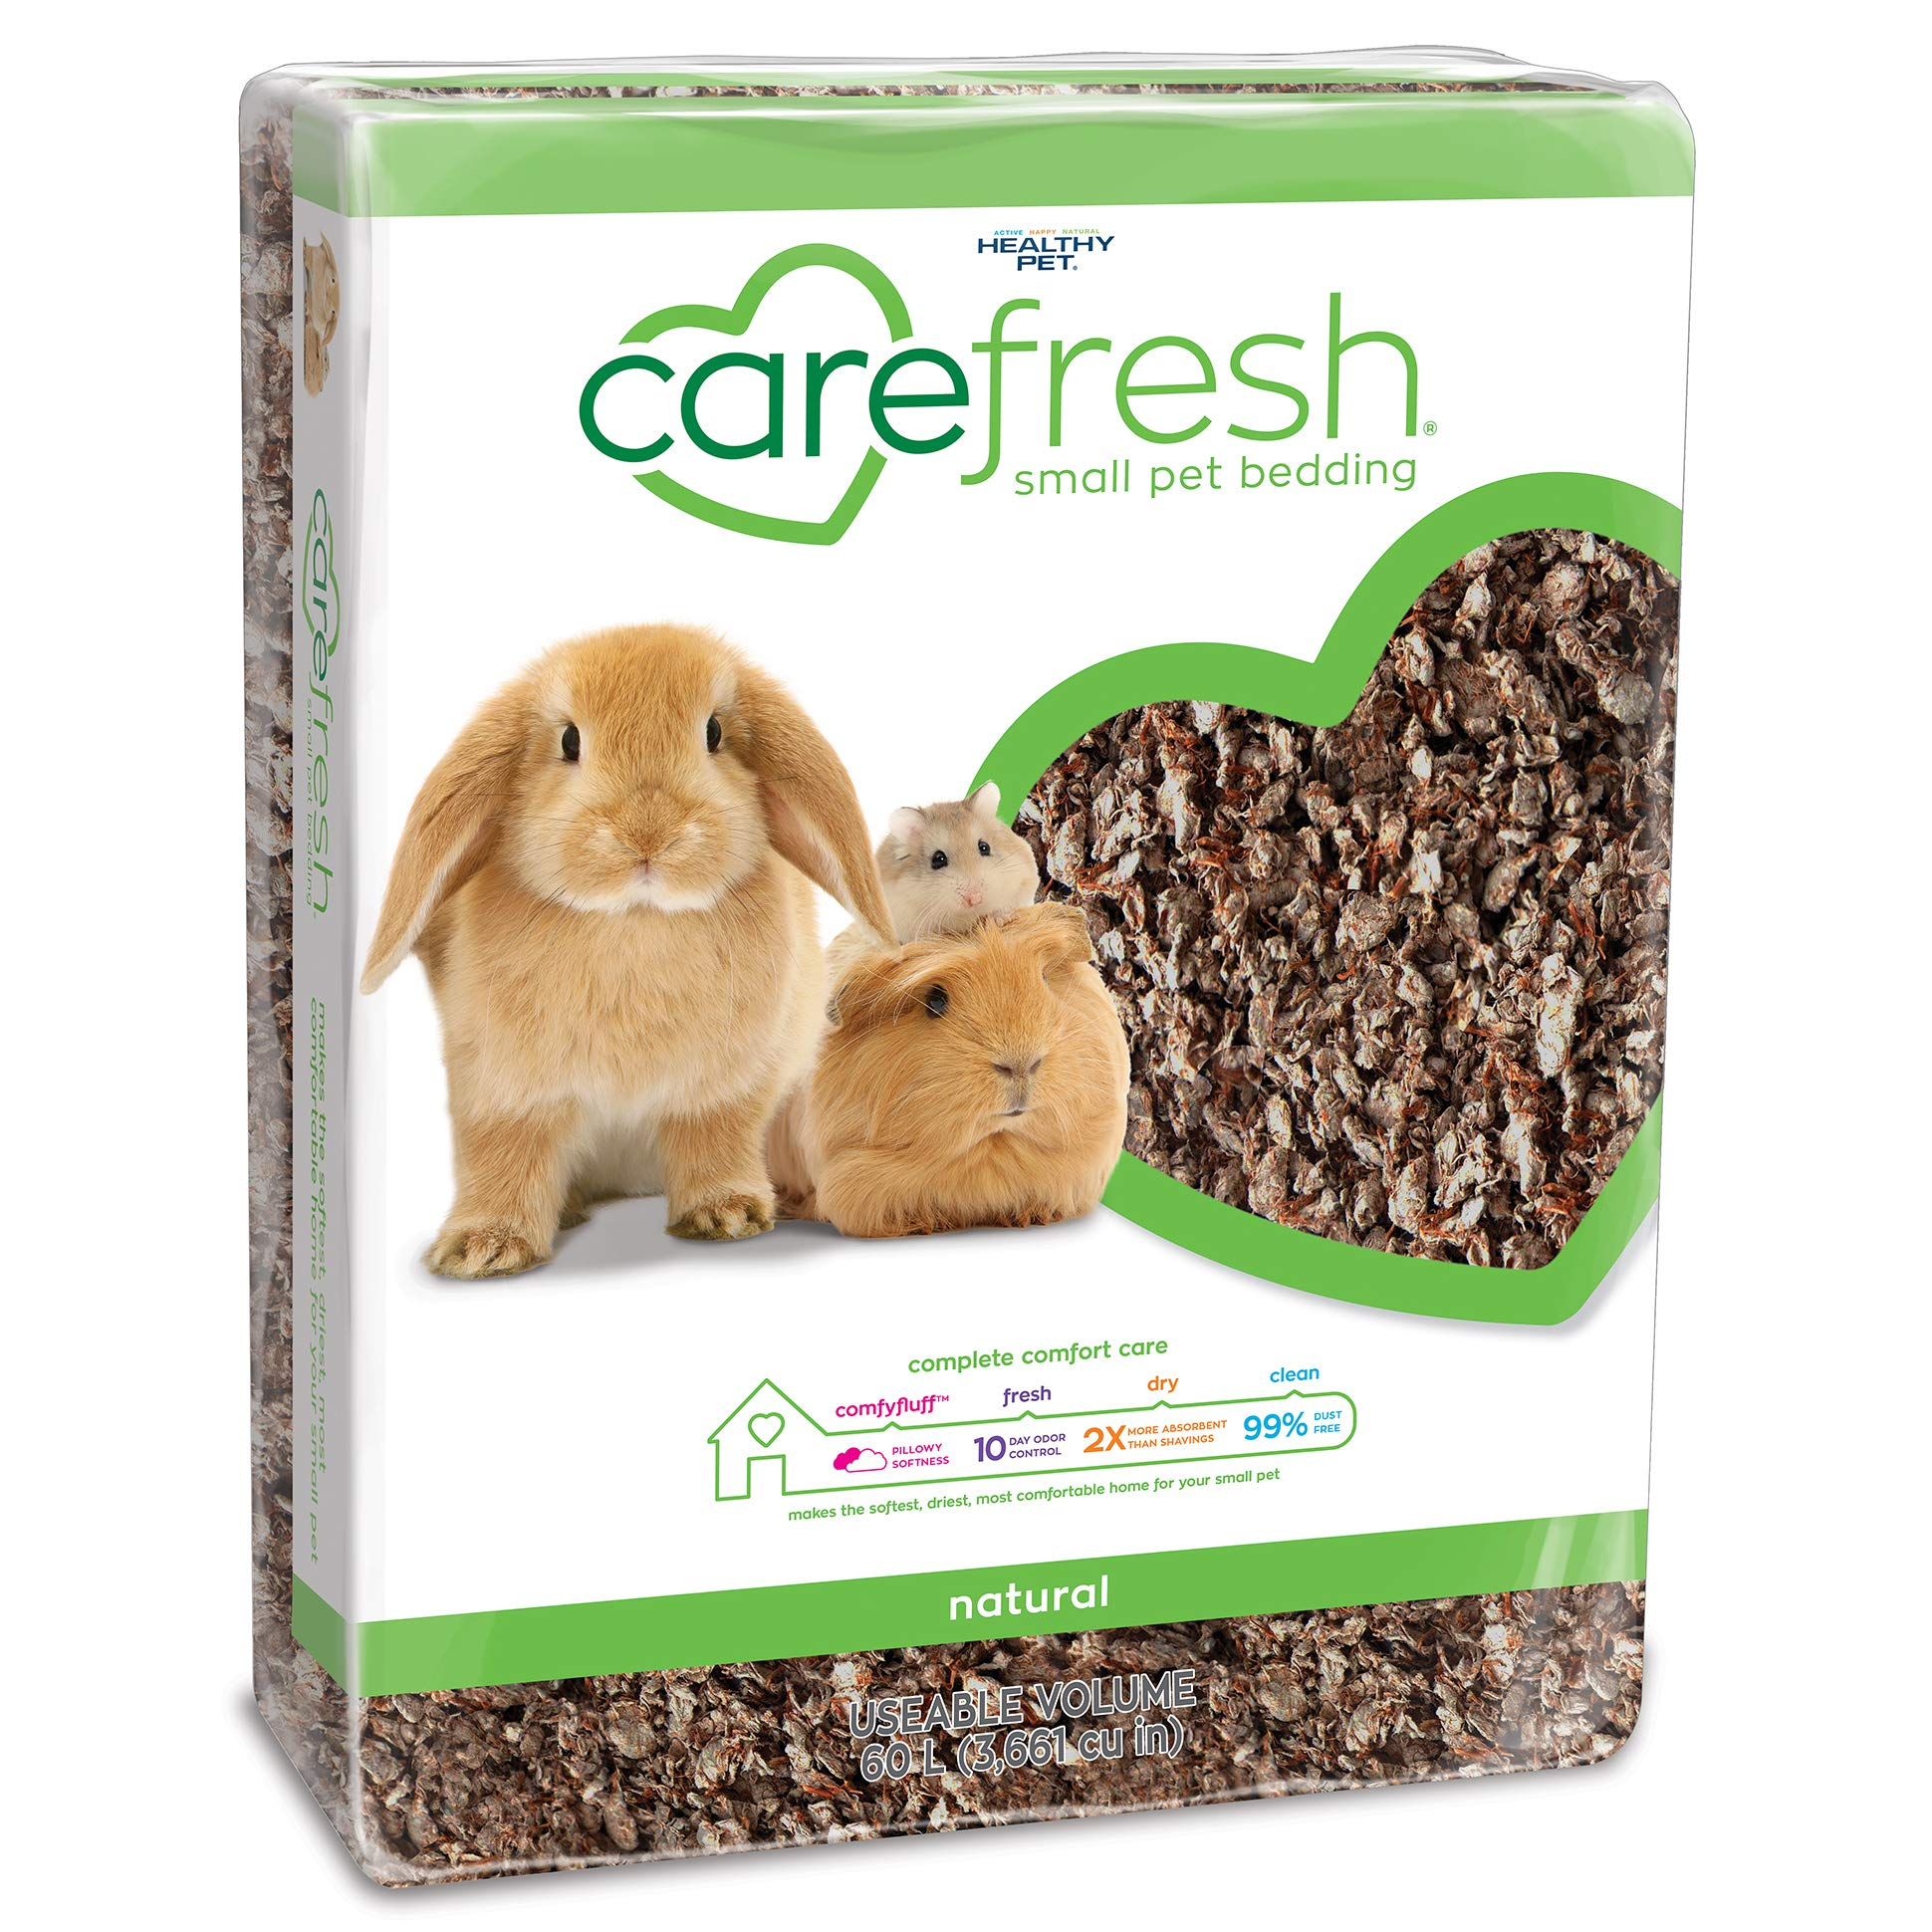 Carefresh Complete Pet Bedding, 60 L, Natural by Carefresh